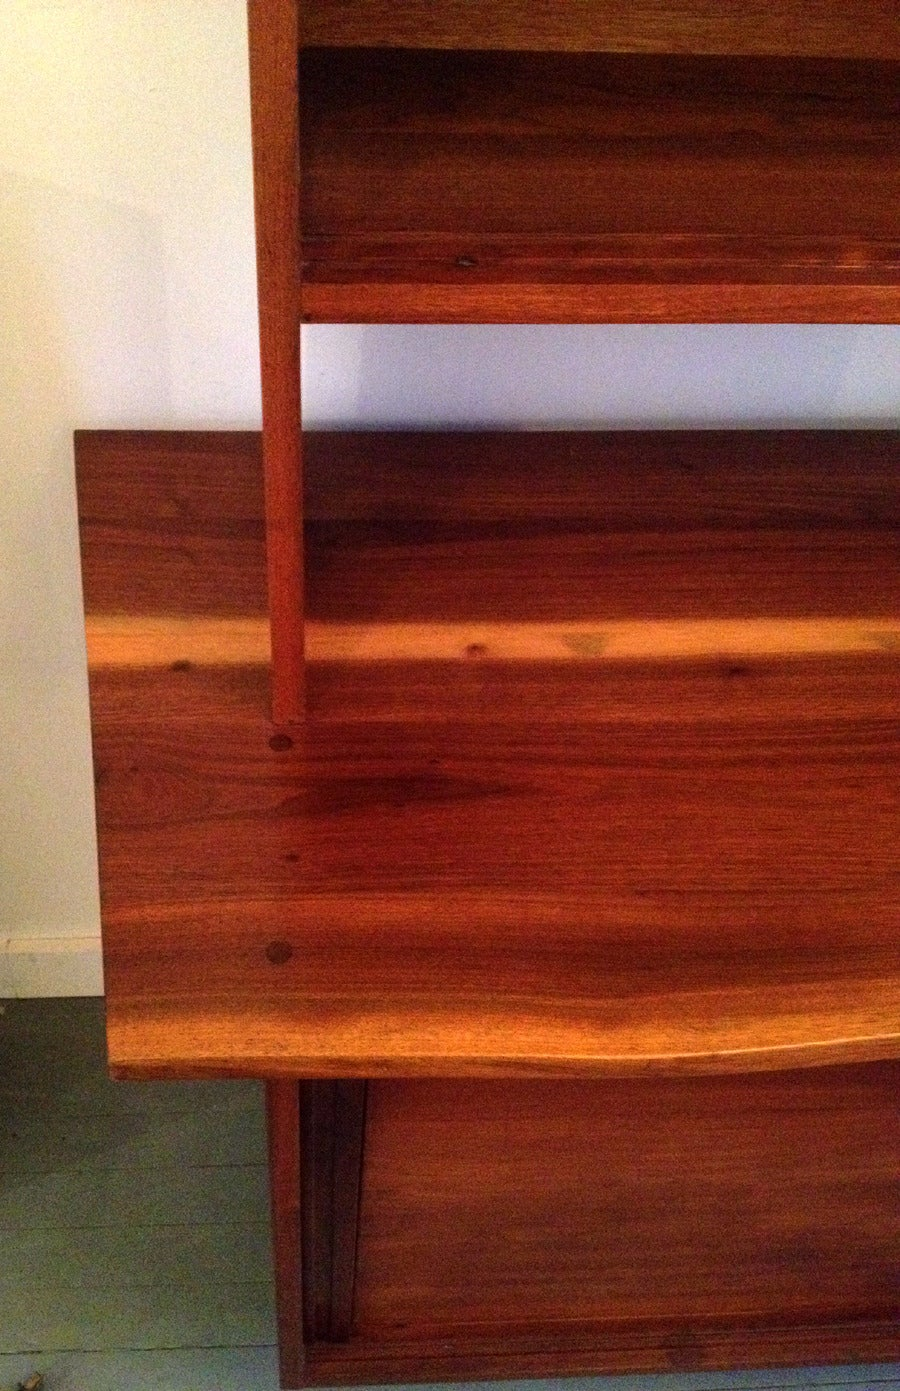 American Walnut Sideboard with Top Shelf by George Nakashima For Sale